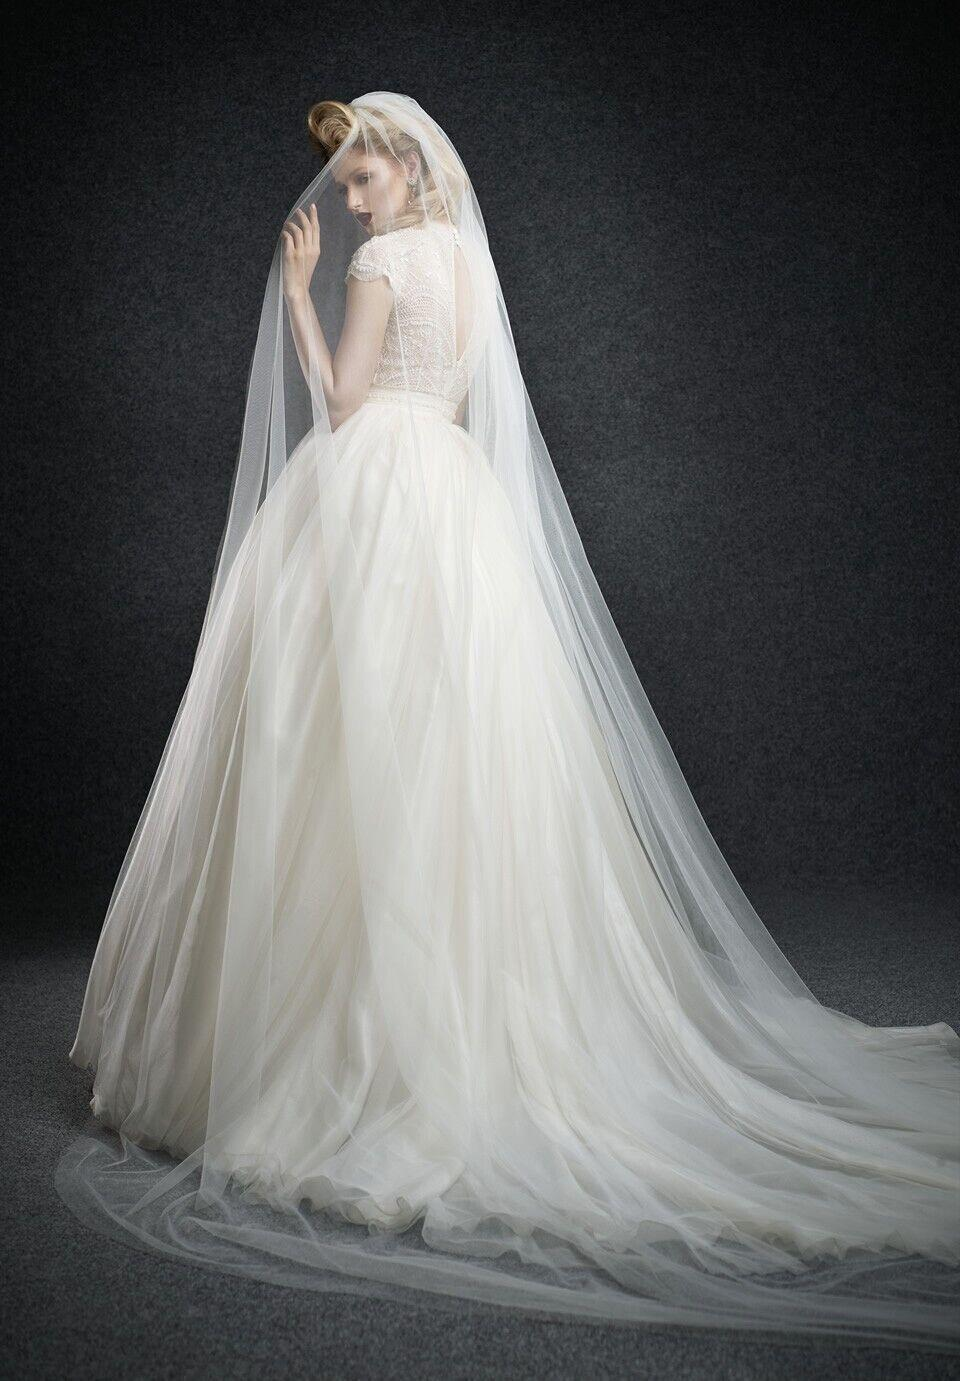 2015 long wedding dress the bride delicate veils royal for Wedding dress with veil